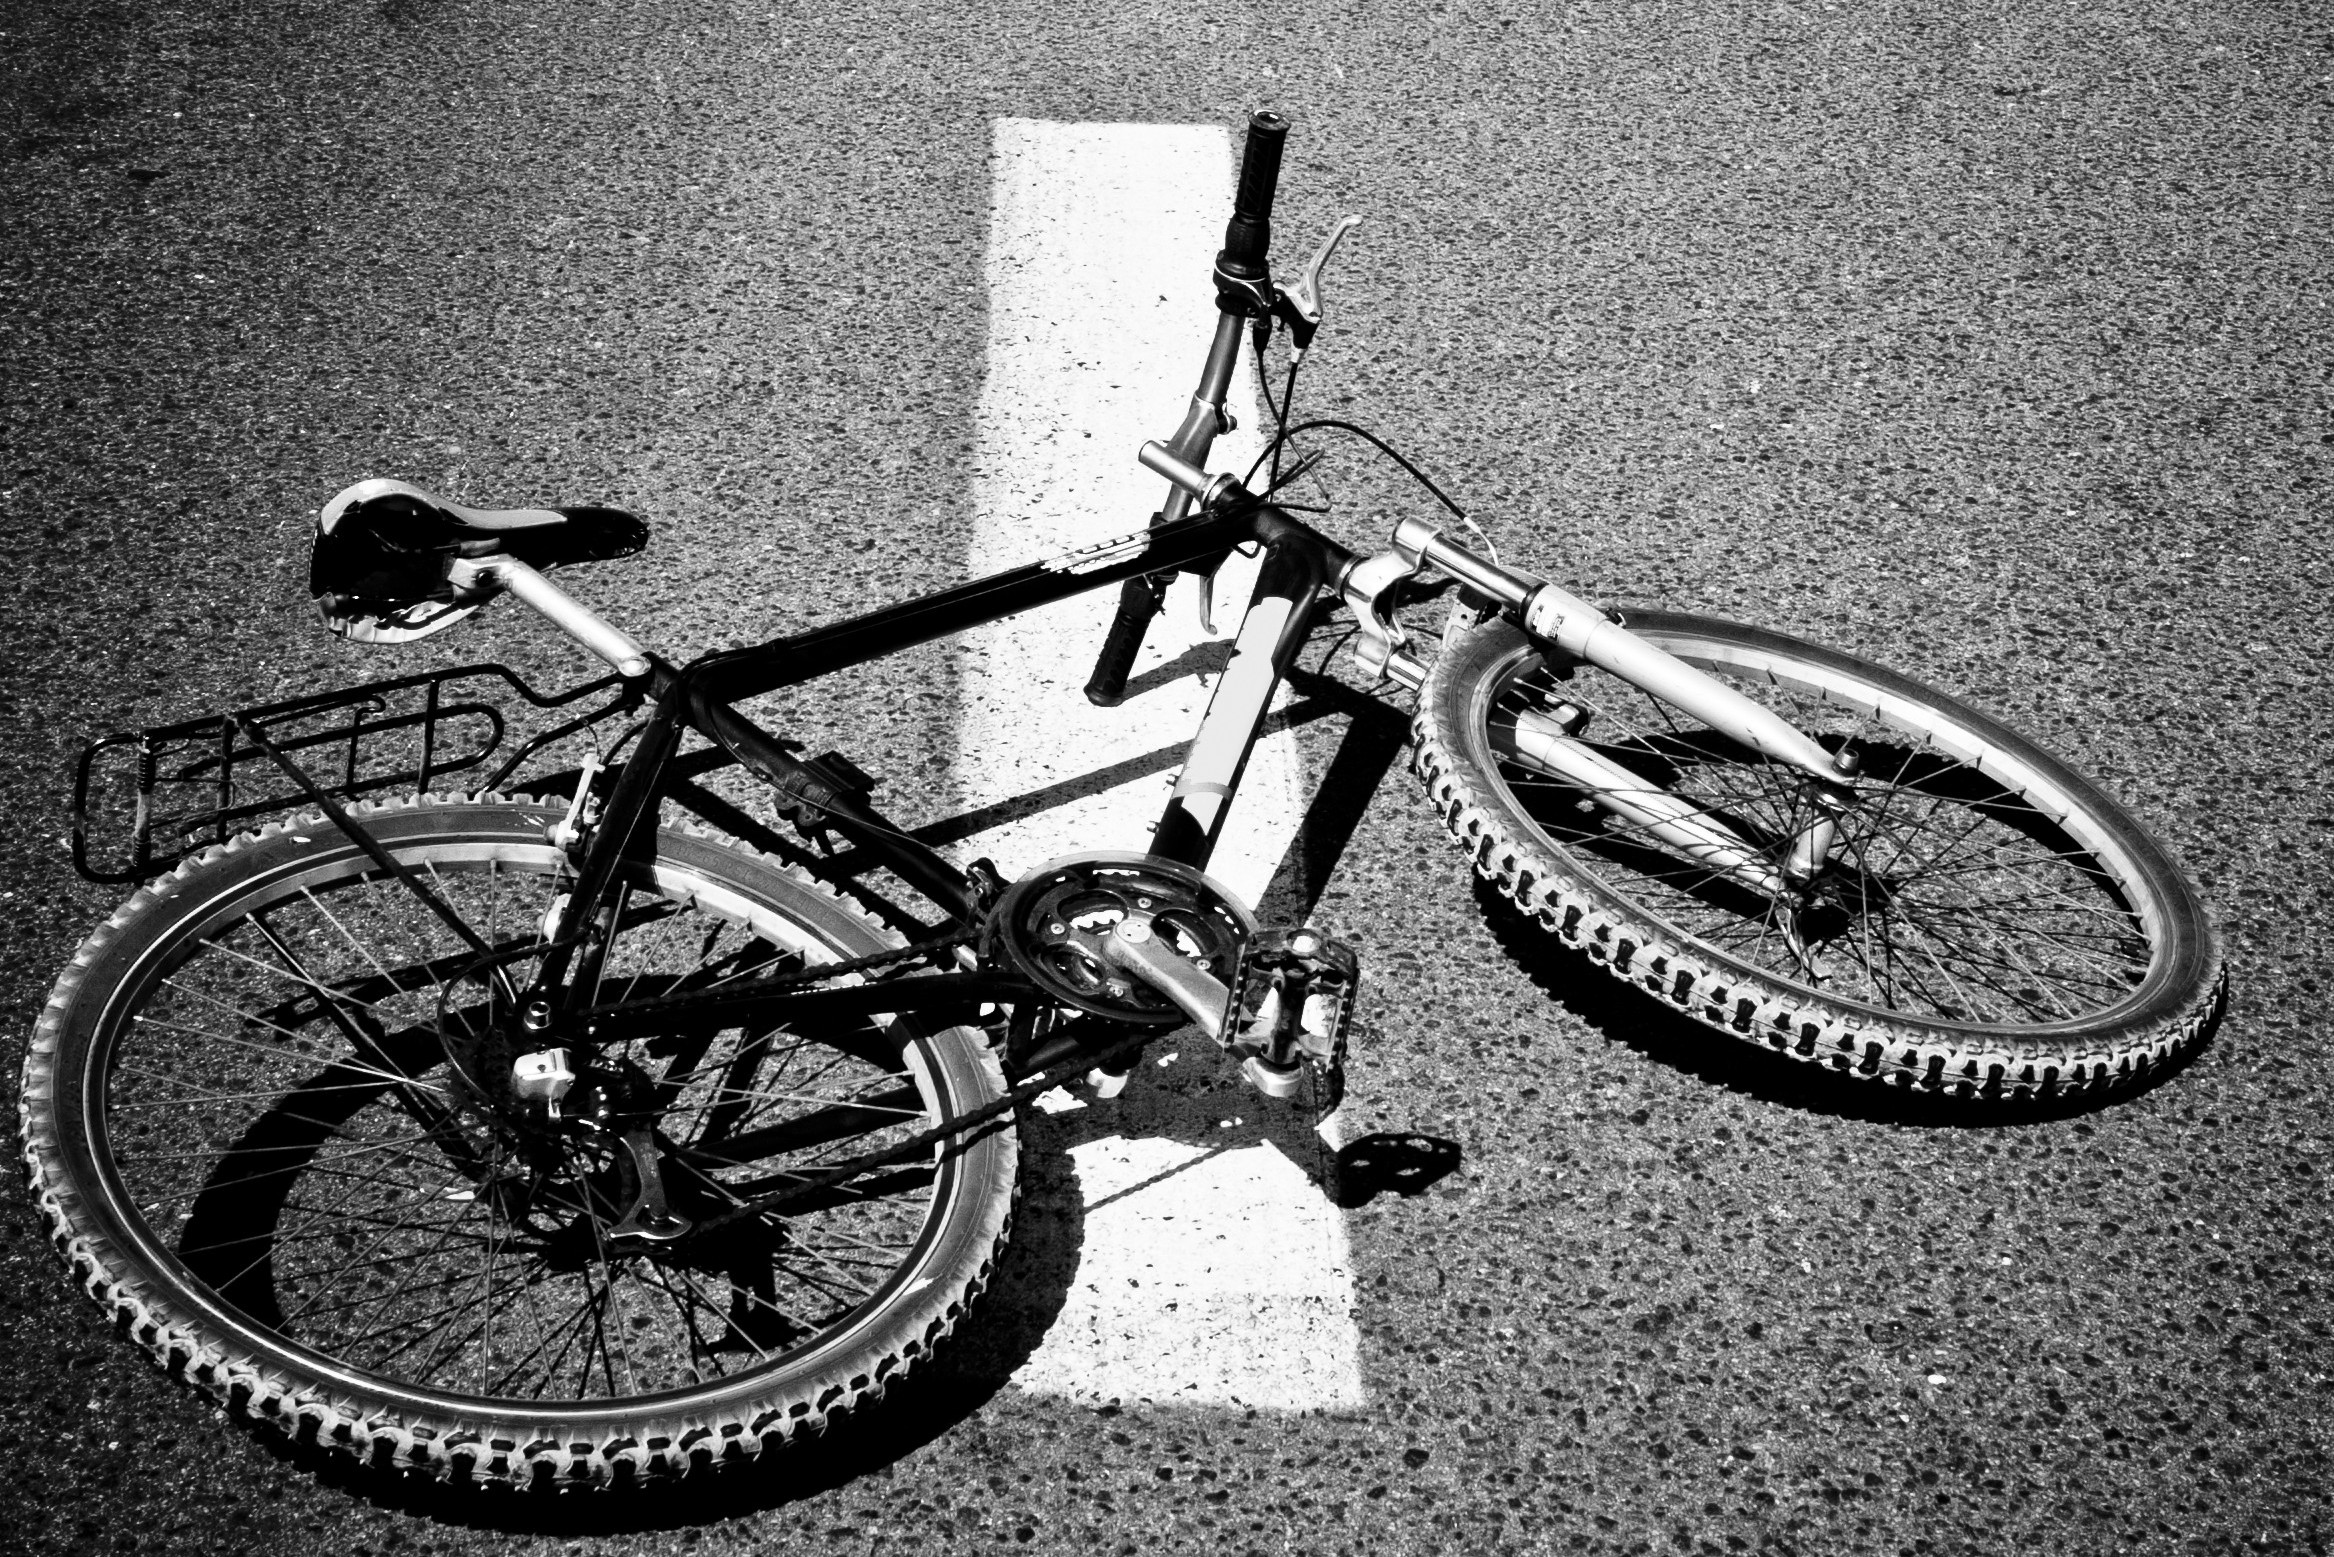 Investigation underway after bicyclist hit and killed